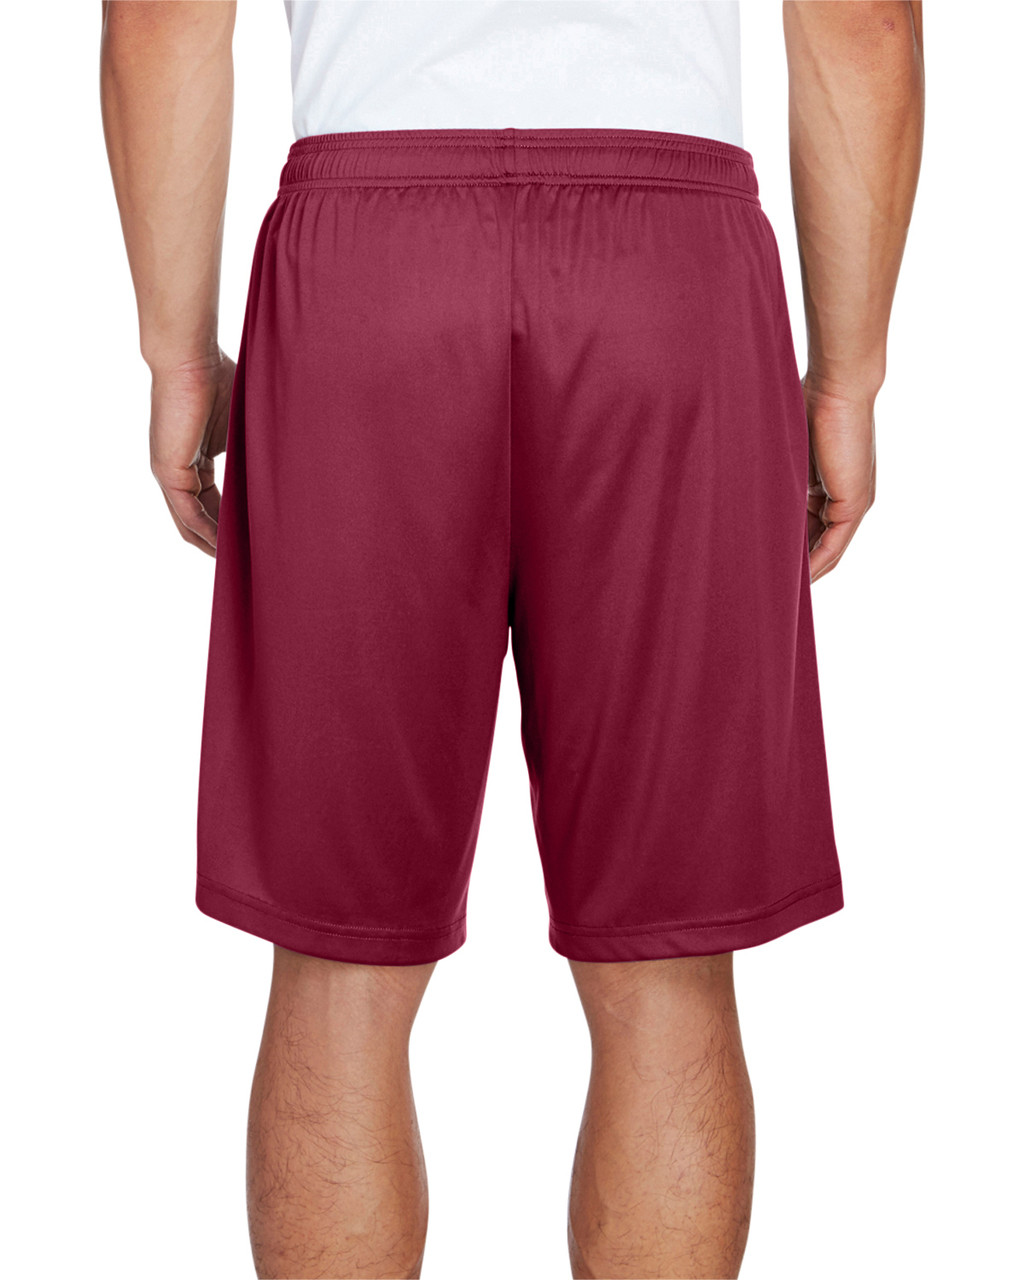 Sport Maroon - Back, TT11SH Team 365 Men's Zone Performance Short | BlankClothing.ca